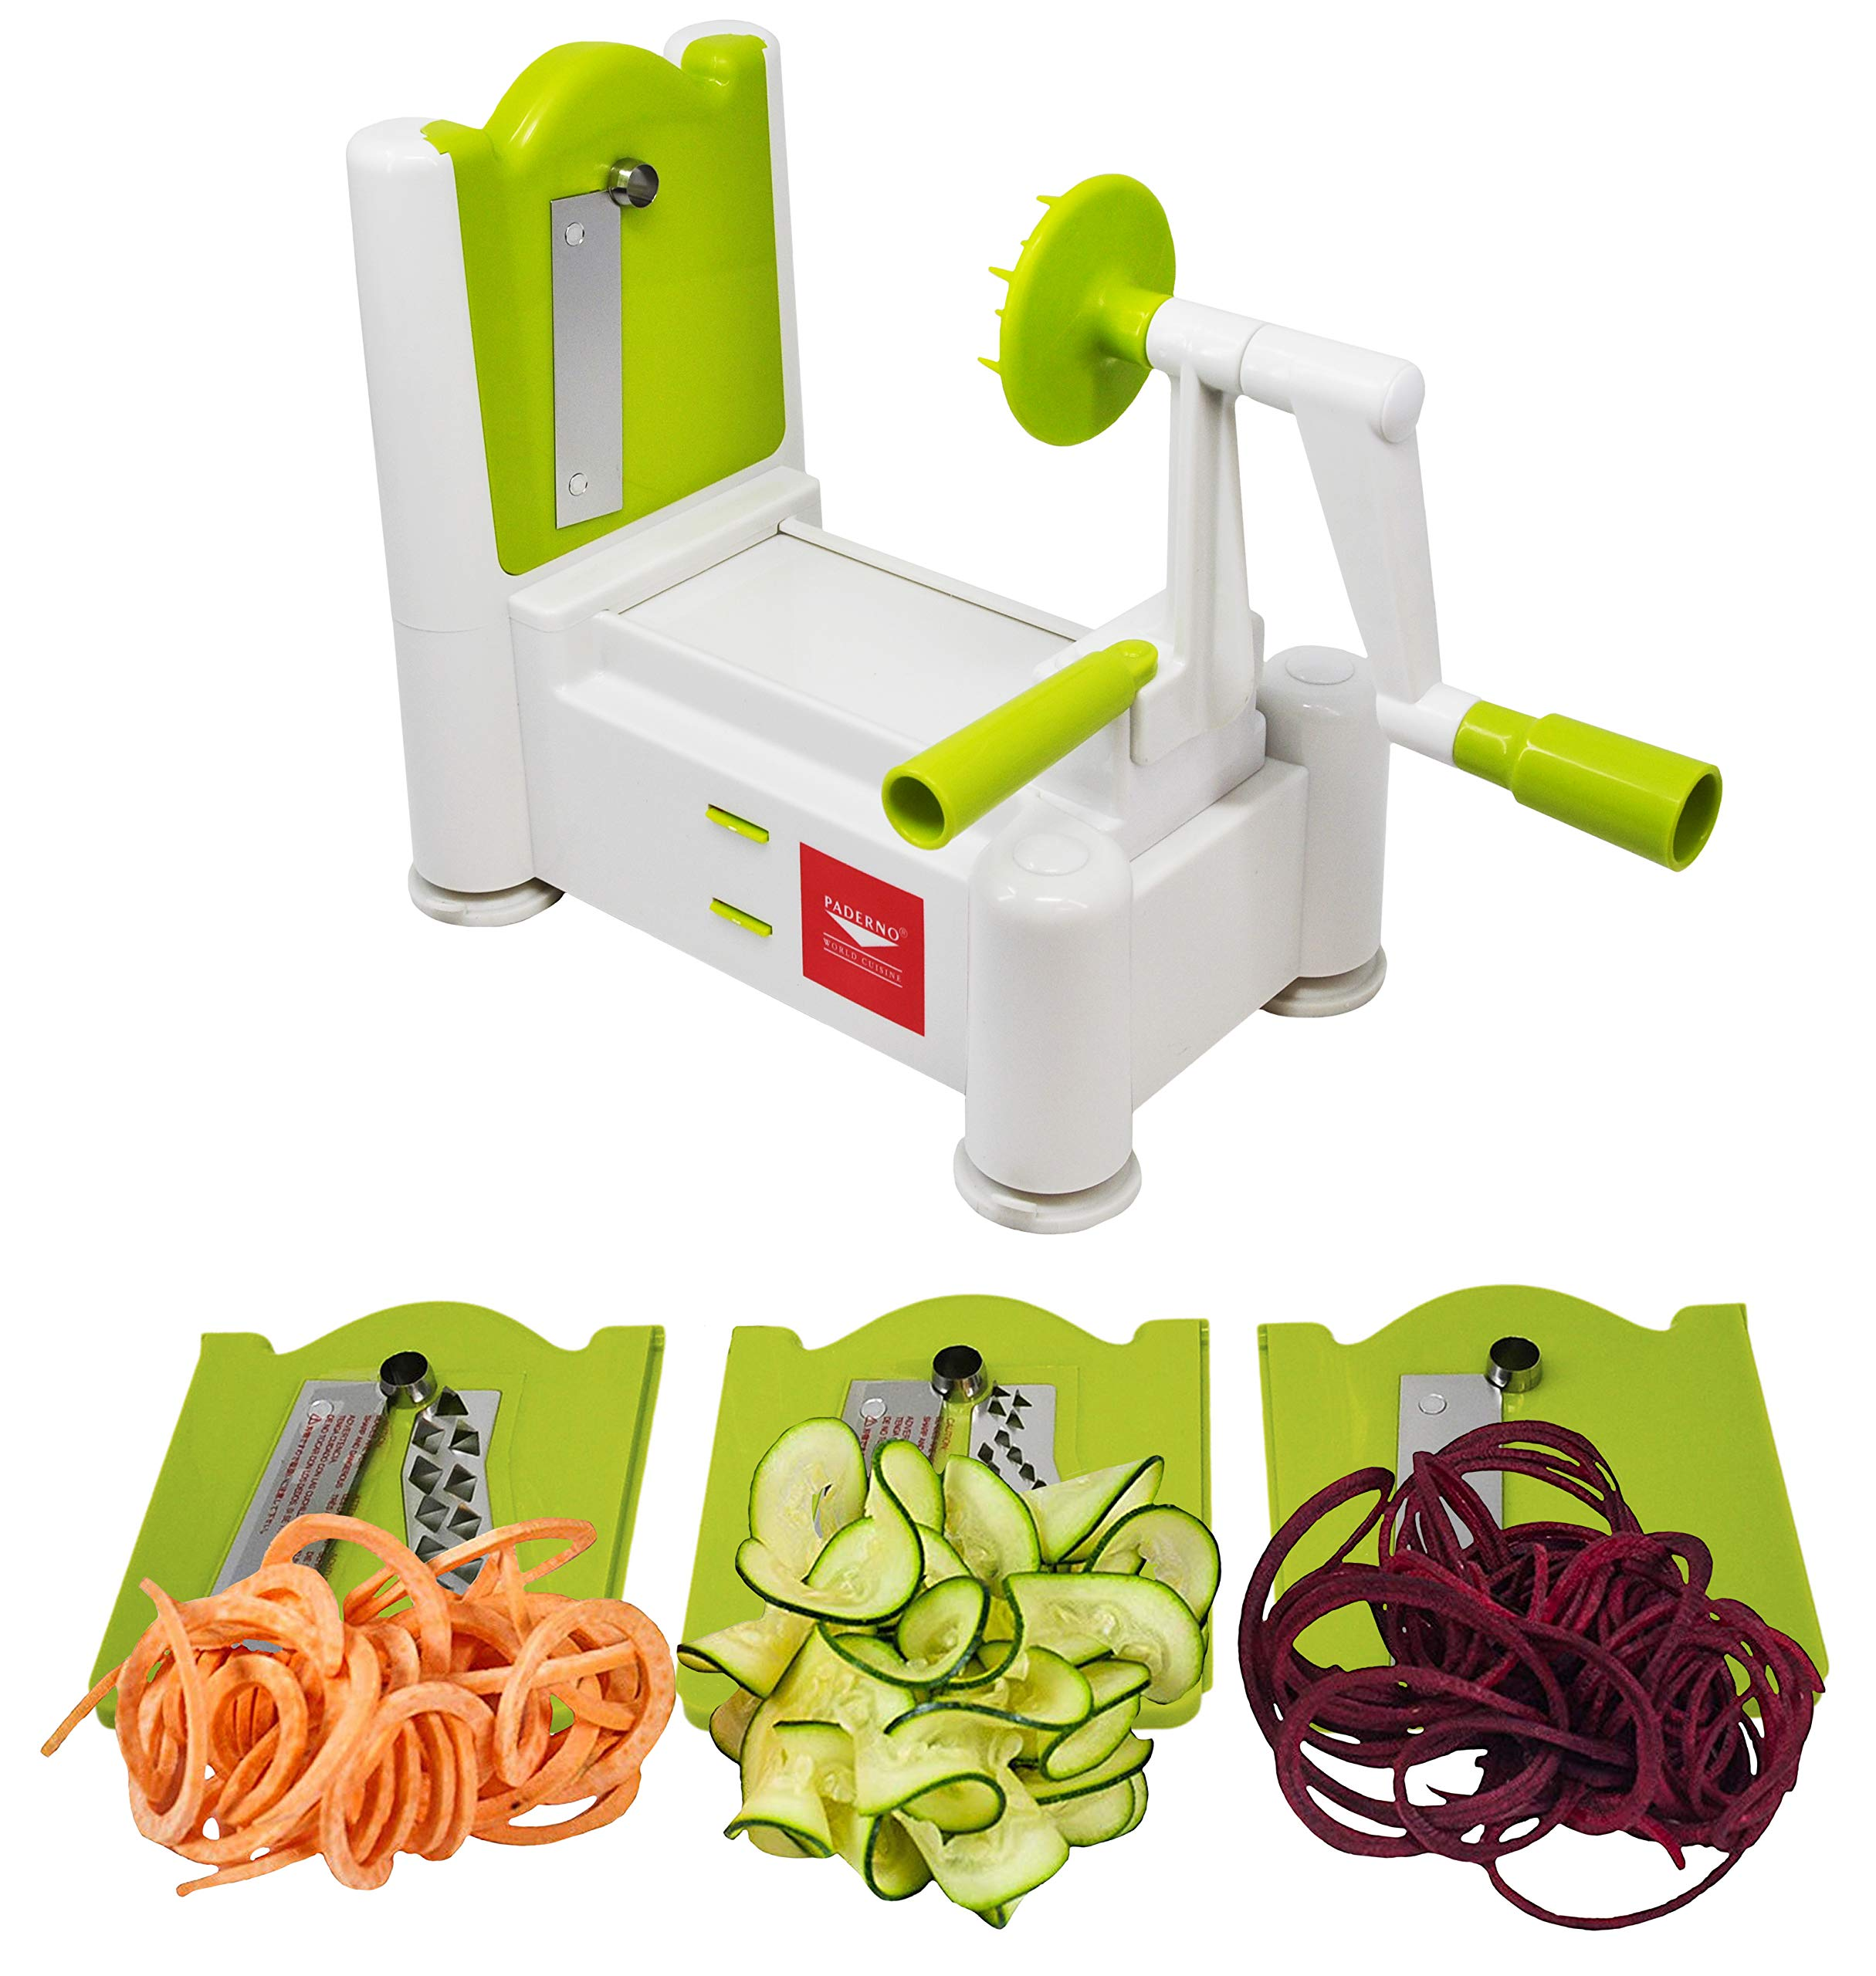 Paderno World Cuisine 3-Blade Vegetable Slicer/Spiralizer, Counter-Mounted and Includes 3 Stainless Steel Blades, White/Lime by Paderno World Cuisine